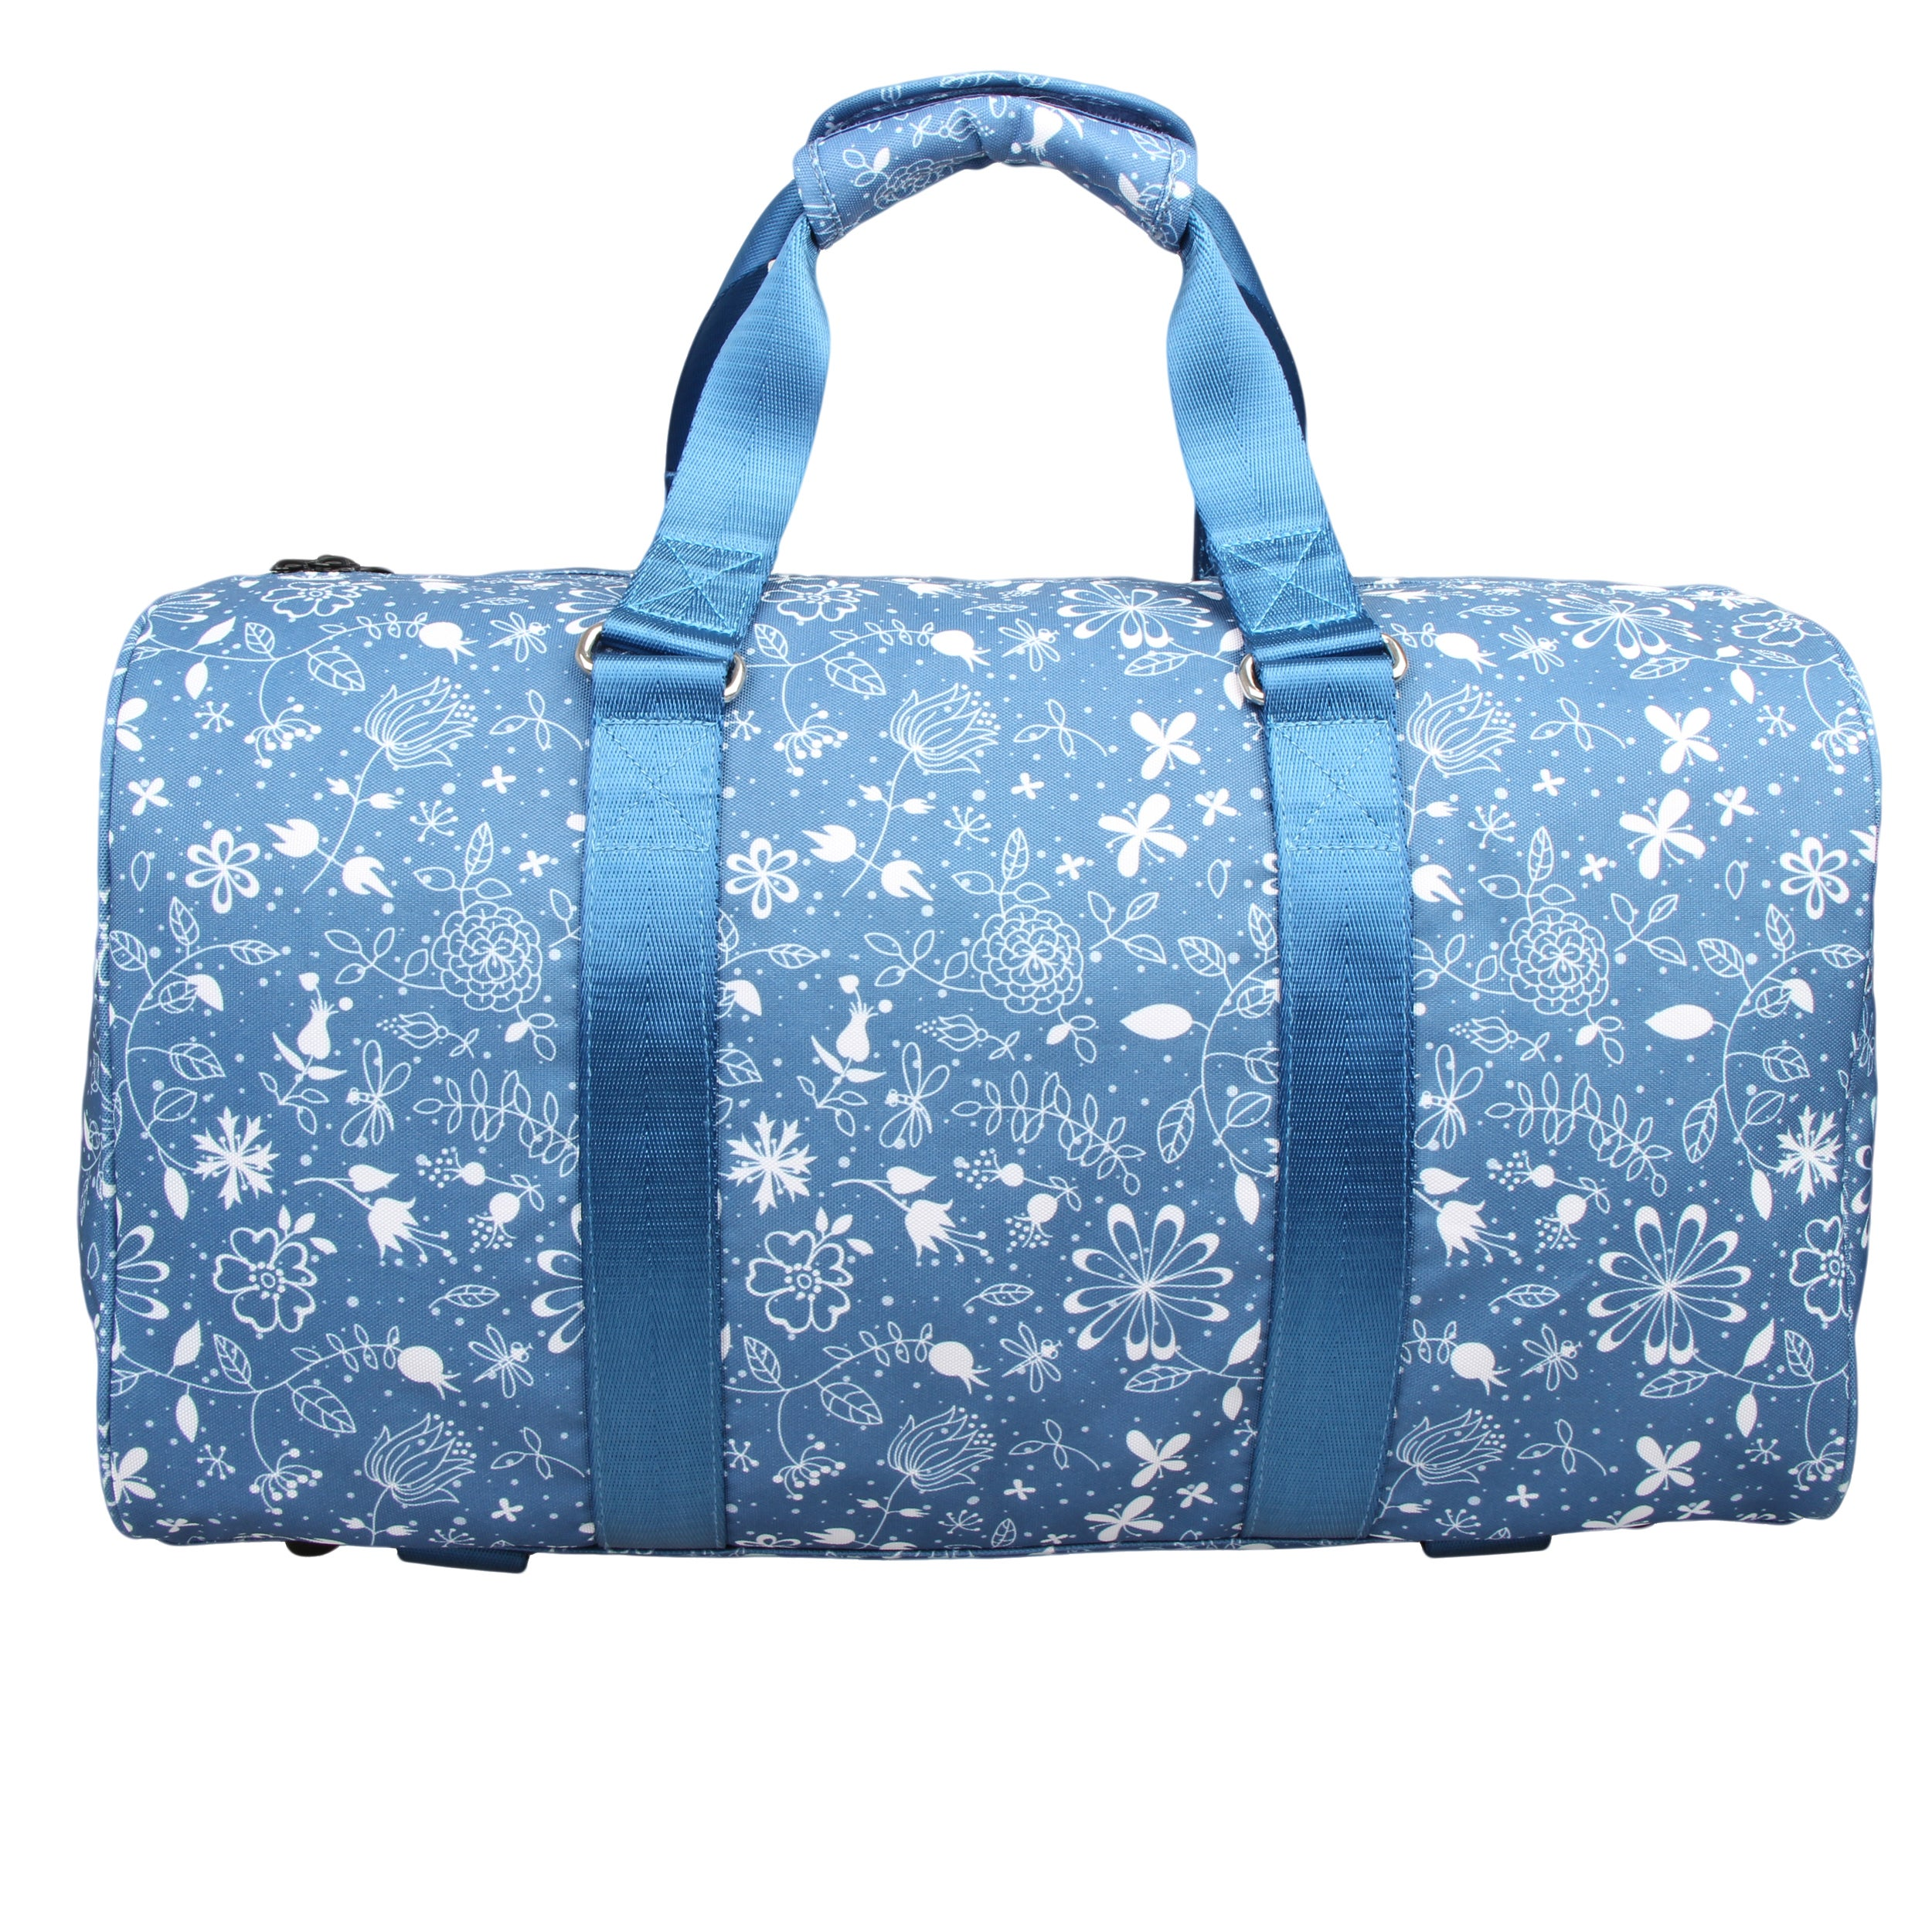 Aftergen Blue Flower Vedic Yoga Duffel Bag Free Shipping On Orders Over 45 12542292